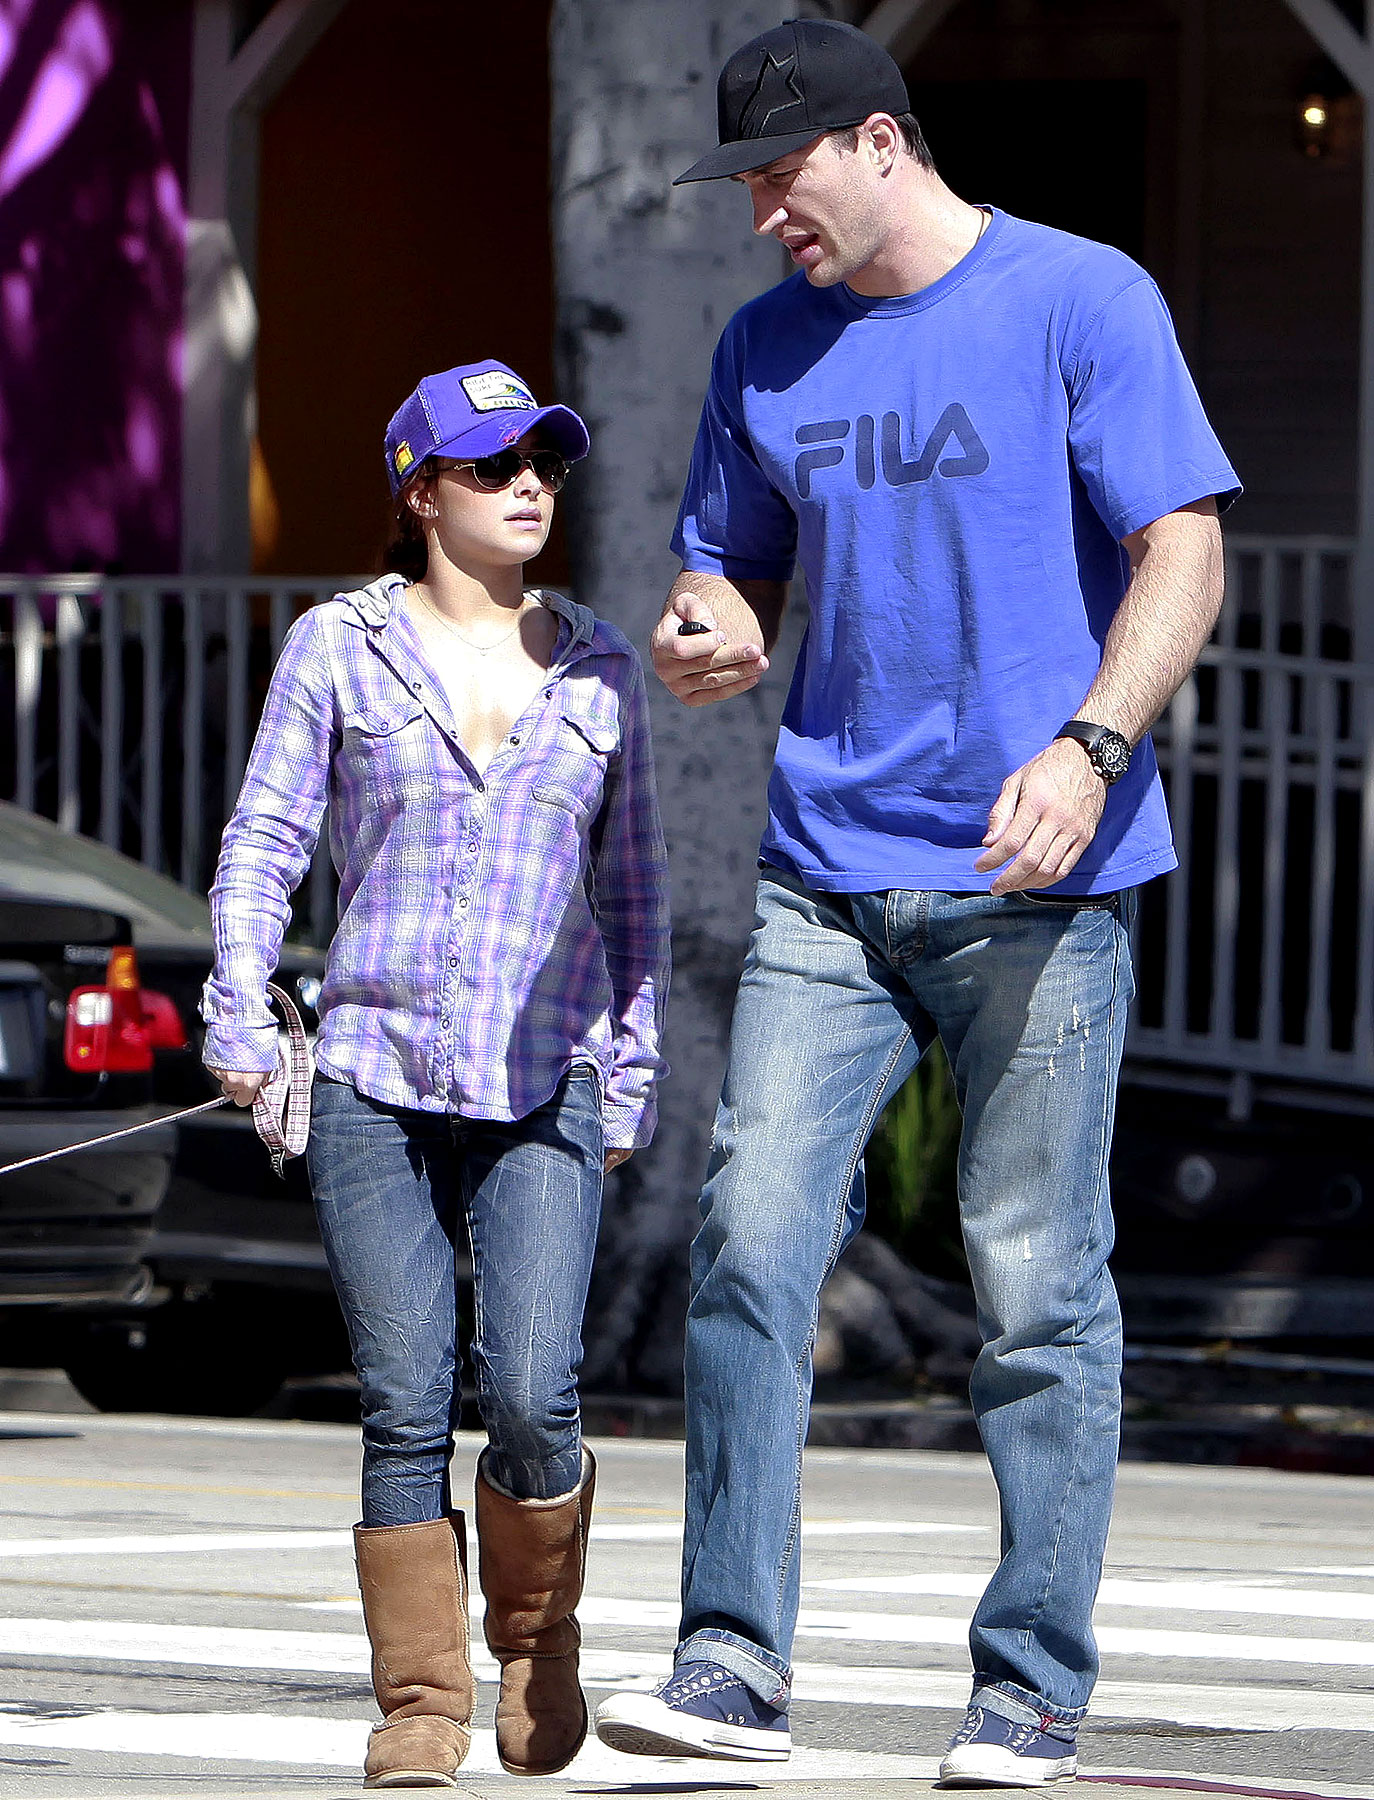 Hayden Panettiere Takes Her Dog and Pet Giant for a Walk (PHOTOS)